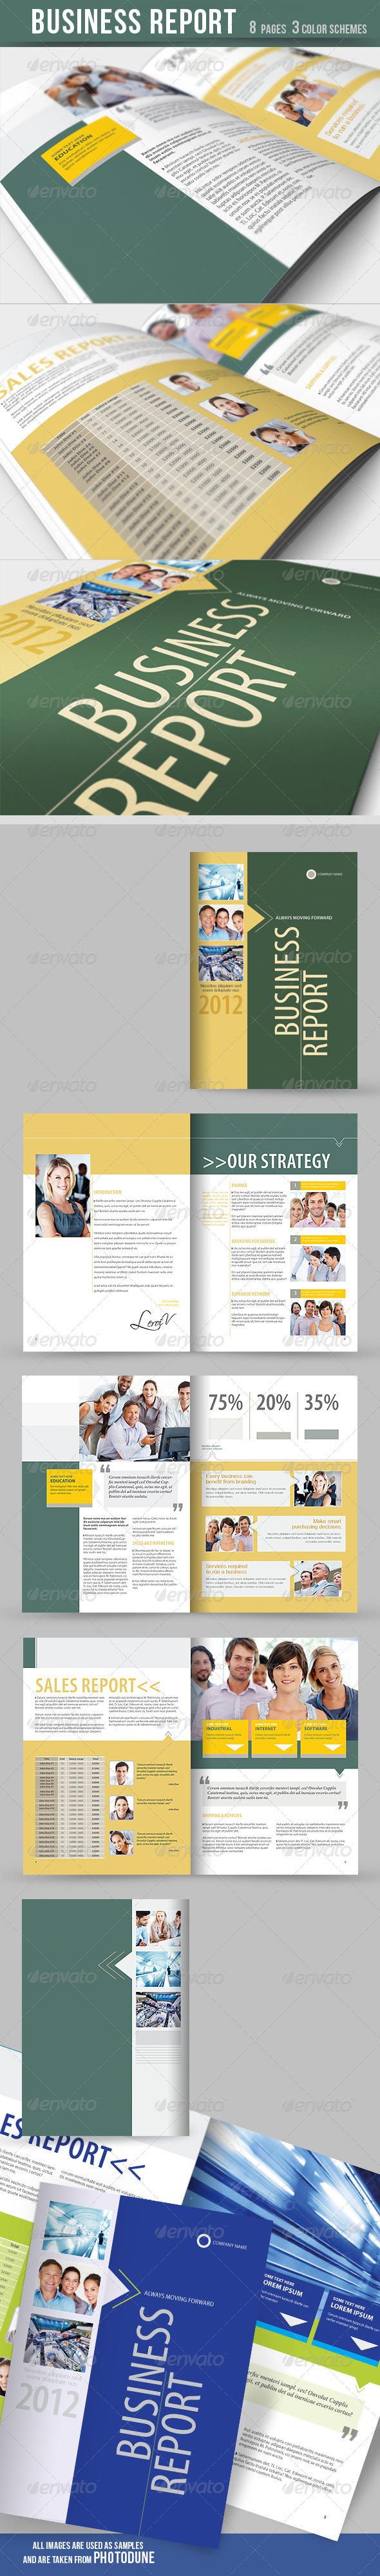 Business Report - Brochure - 3 Color Schemes - Corporate Brochures